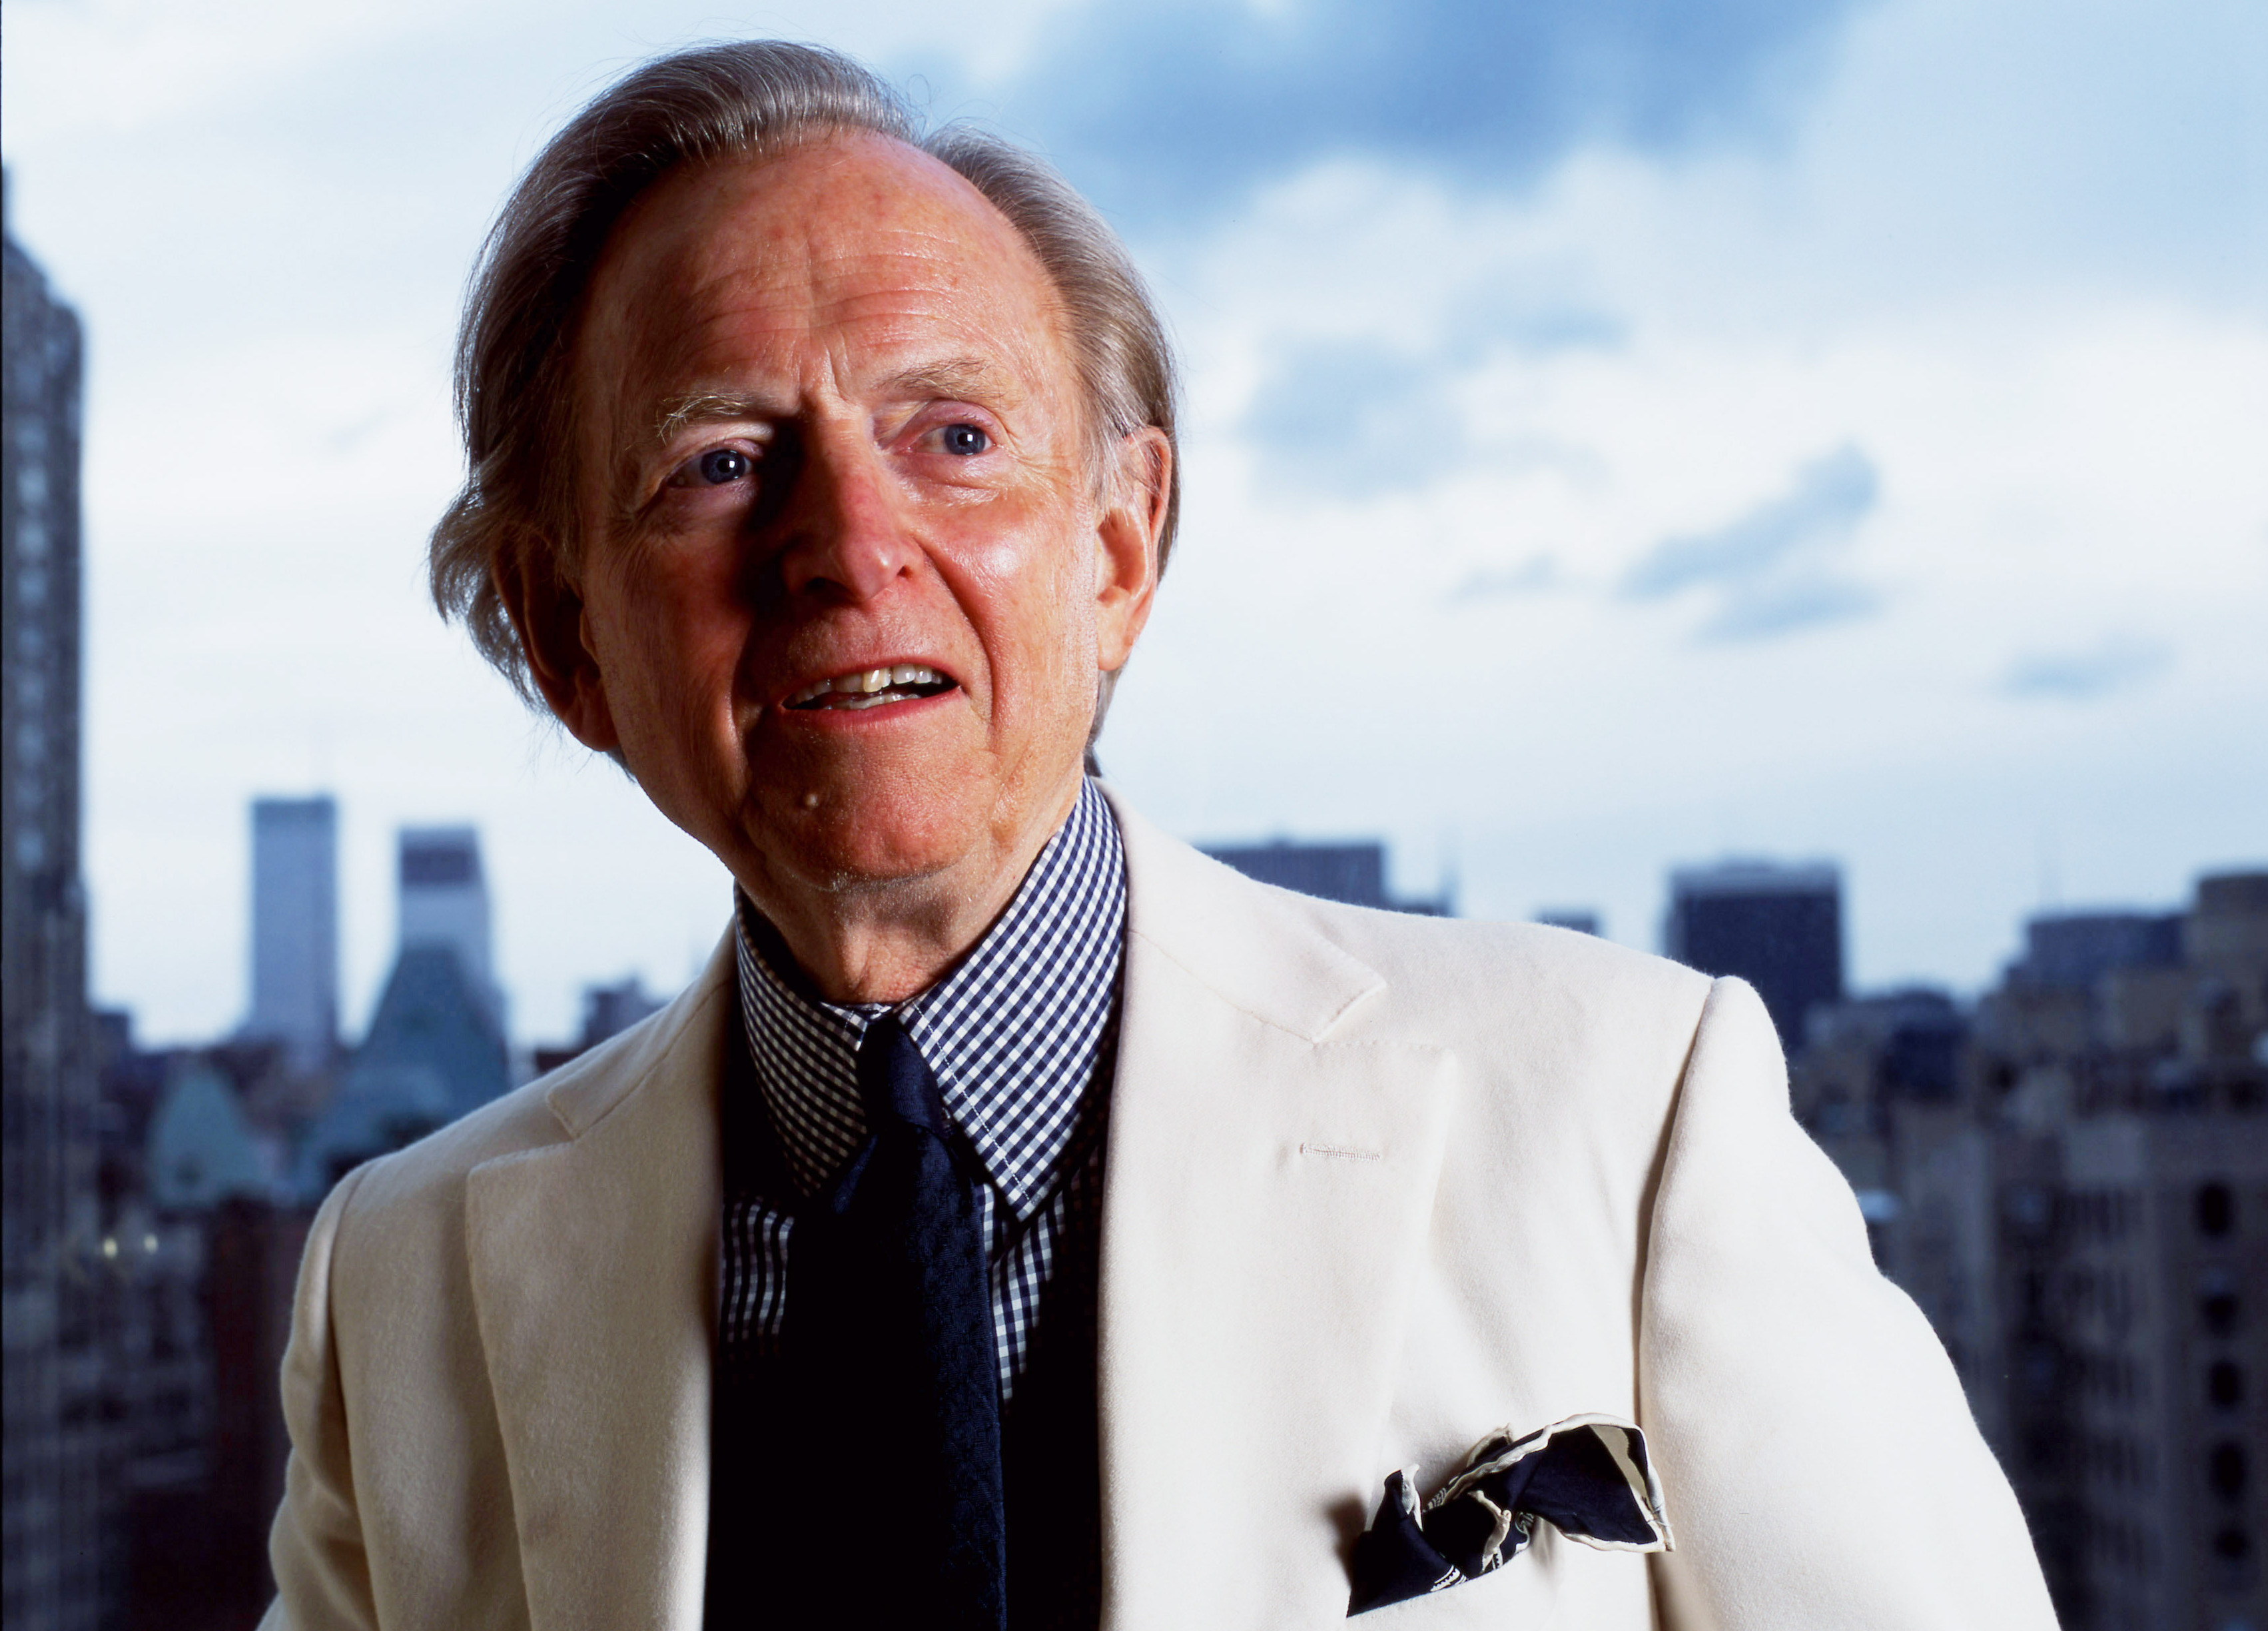 Novelist and journalist Tom Wolfe believed that techniques for fiction and nonfiction should be interchangeable.